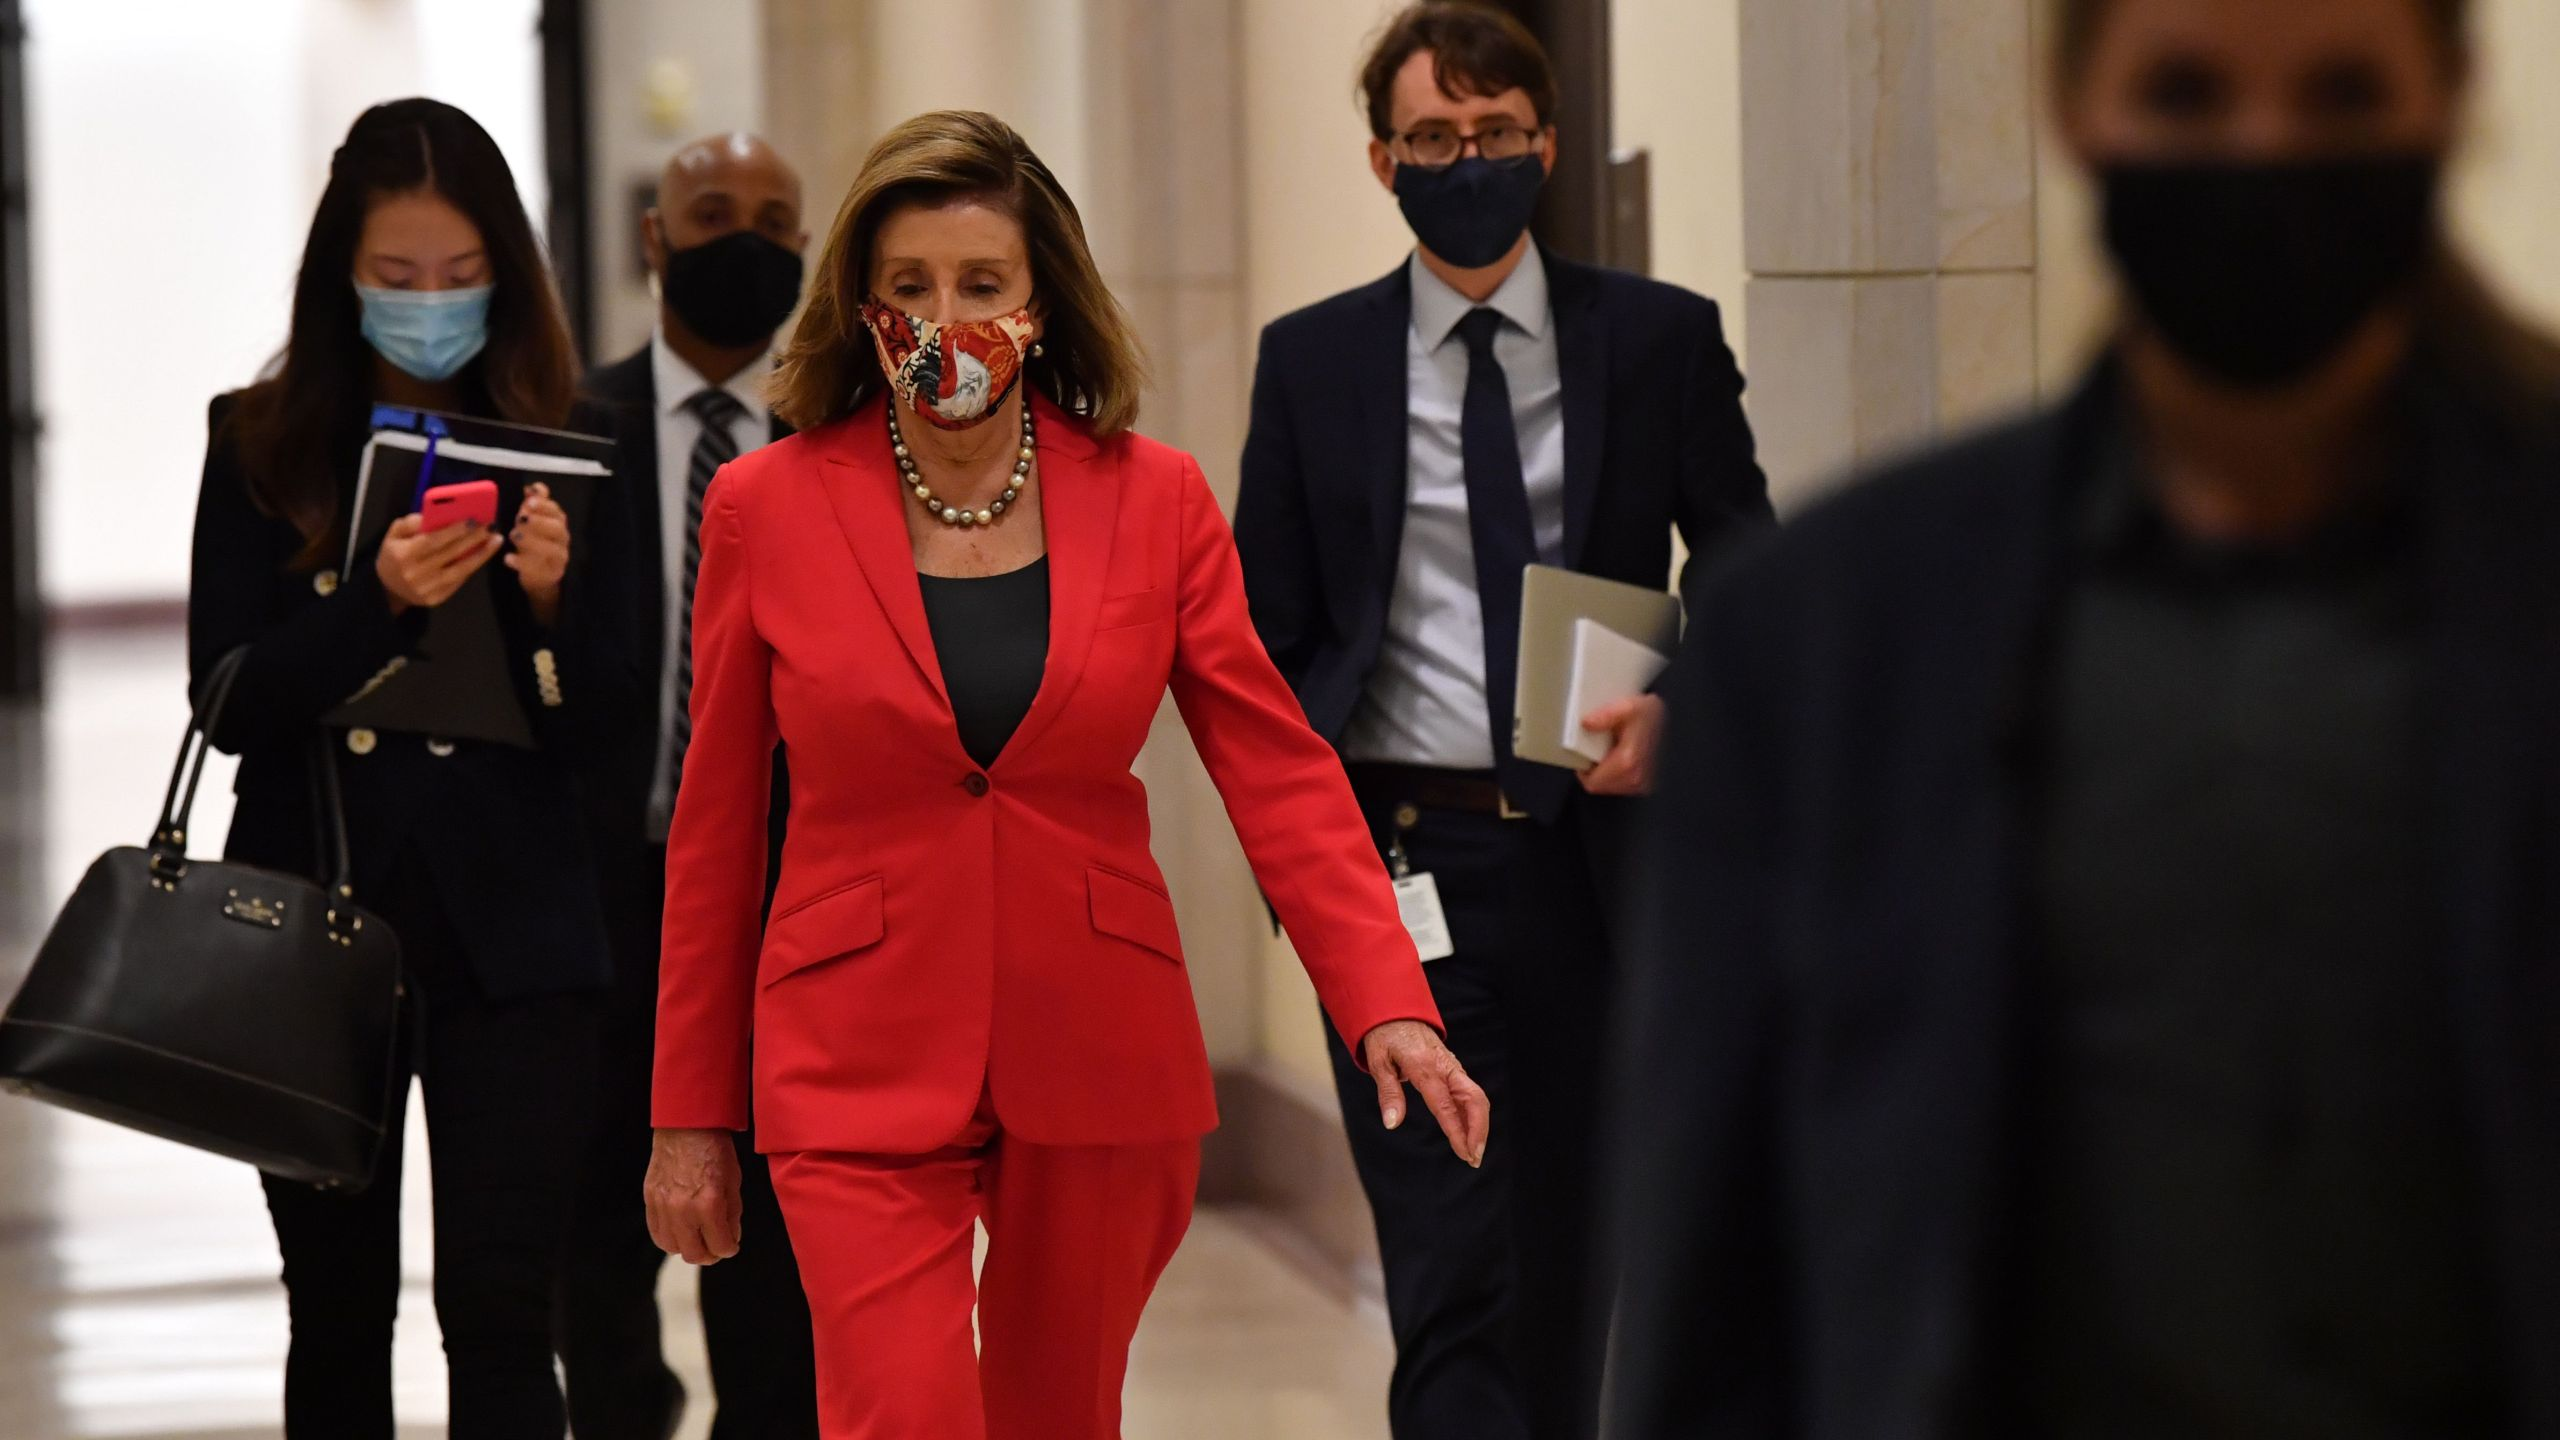 U.S. Speaker of the House, Nancy Pelosi, Democrat of California, leaves after her weekly press briefing on Capitol Hill in Washington, D.C., on Nov. 6, 2020. (NICHOLAS KAMM/AFP via Getty Images)